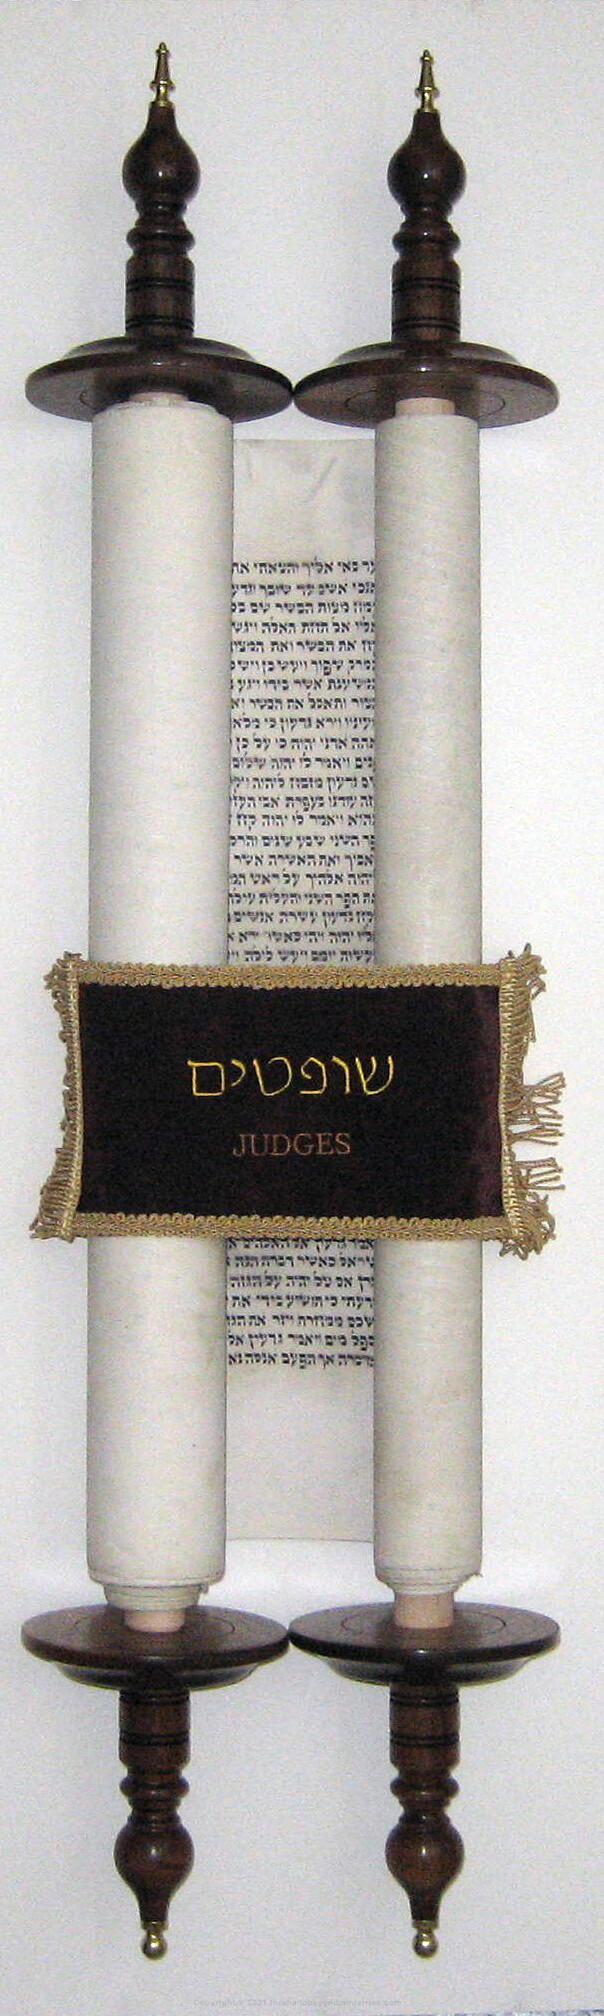 Hebrew Scroll of Judges with new Etz Chaim - Scroll rollers